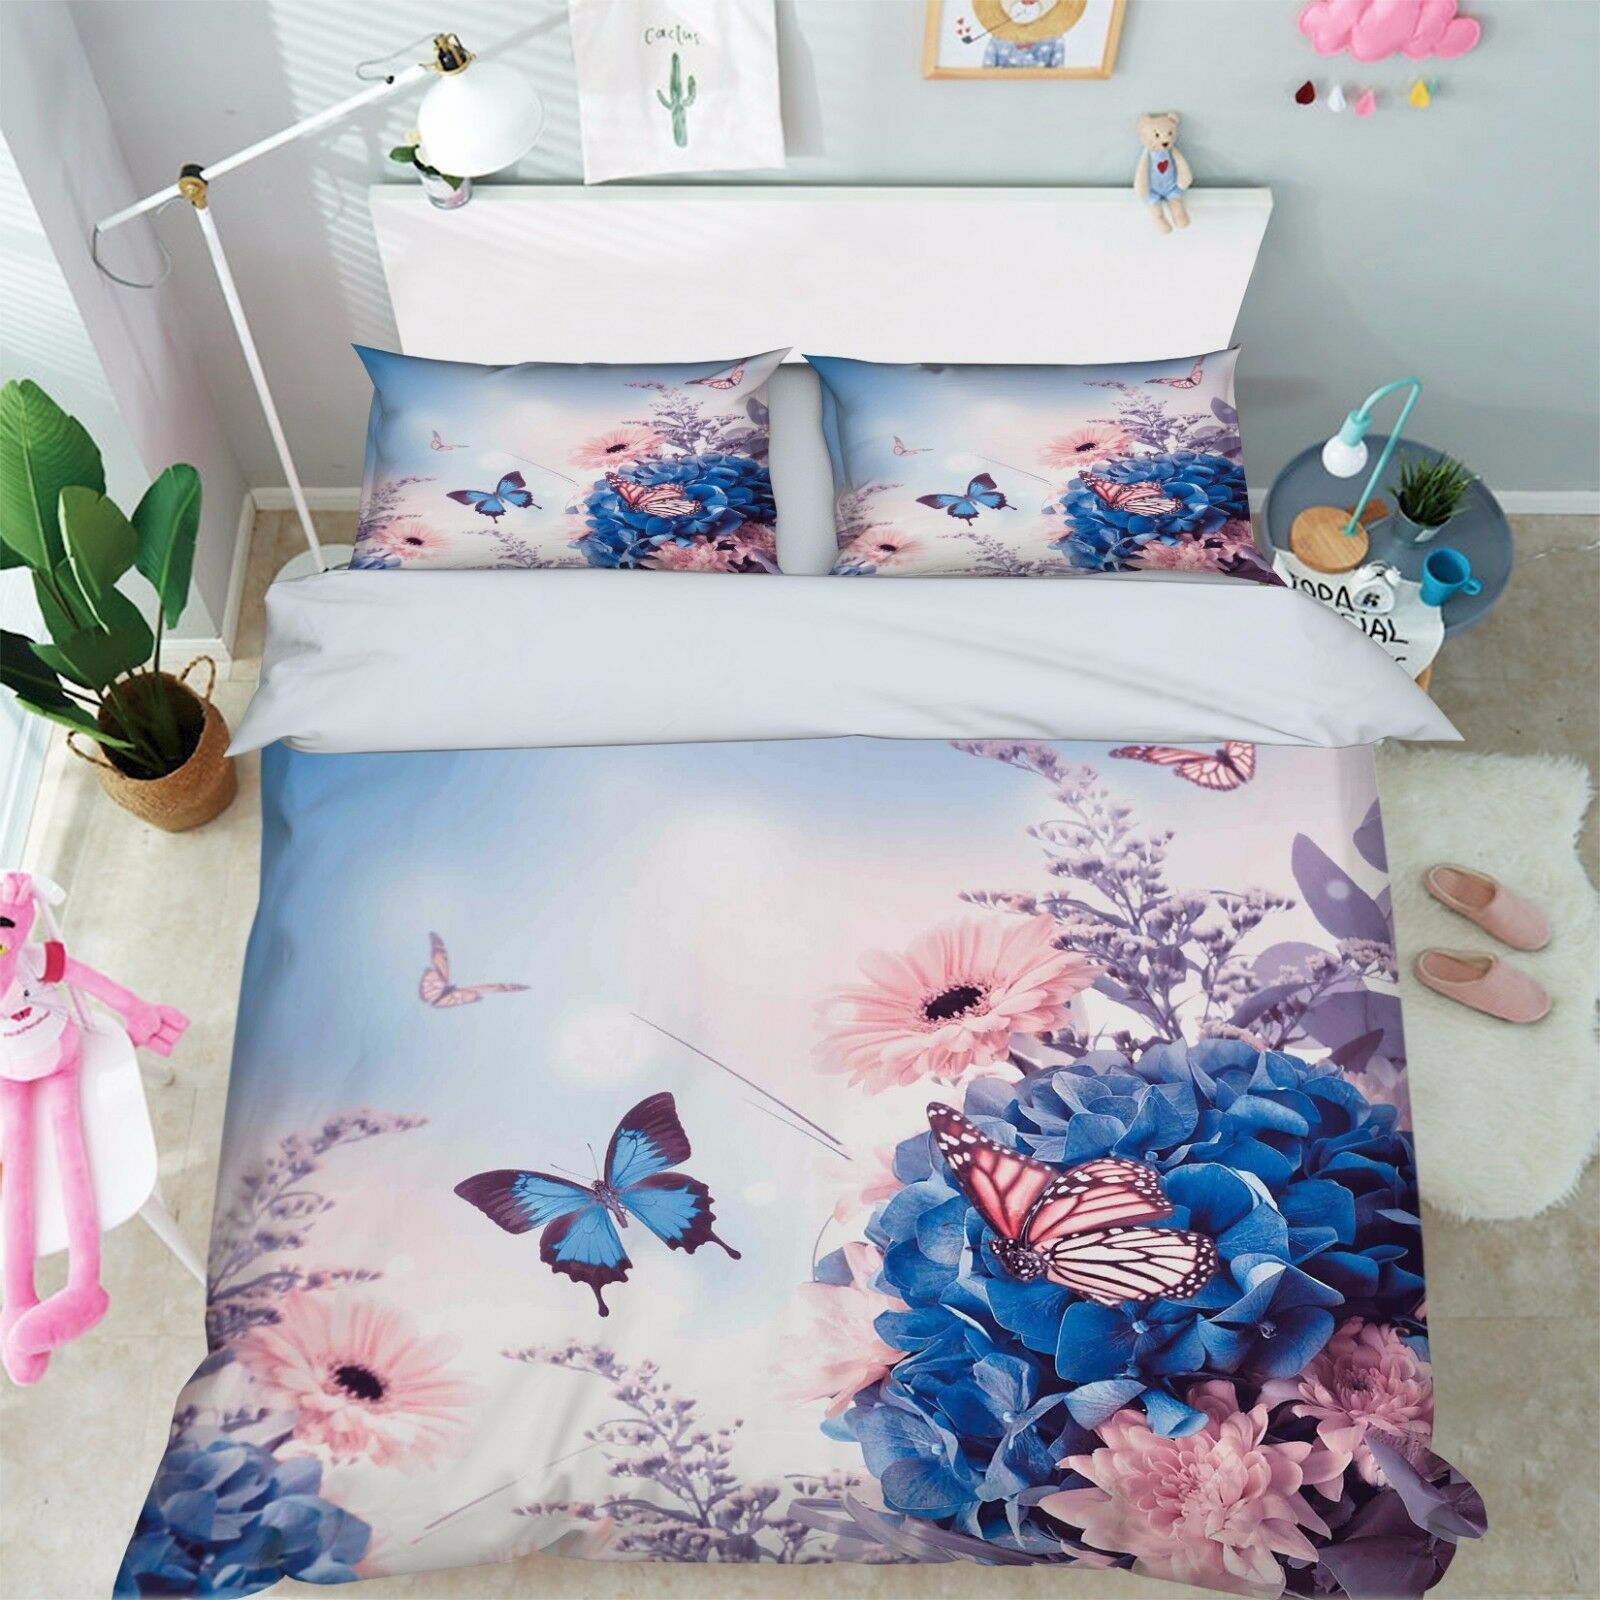 3D Flowers Butterfly  5222 Bed Pillowcases Quilt Duvet Cover Set Single Queen CA